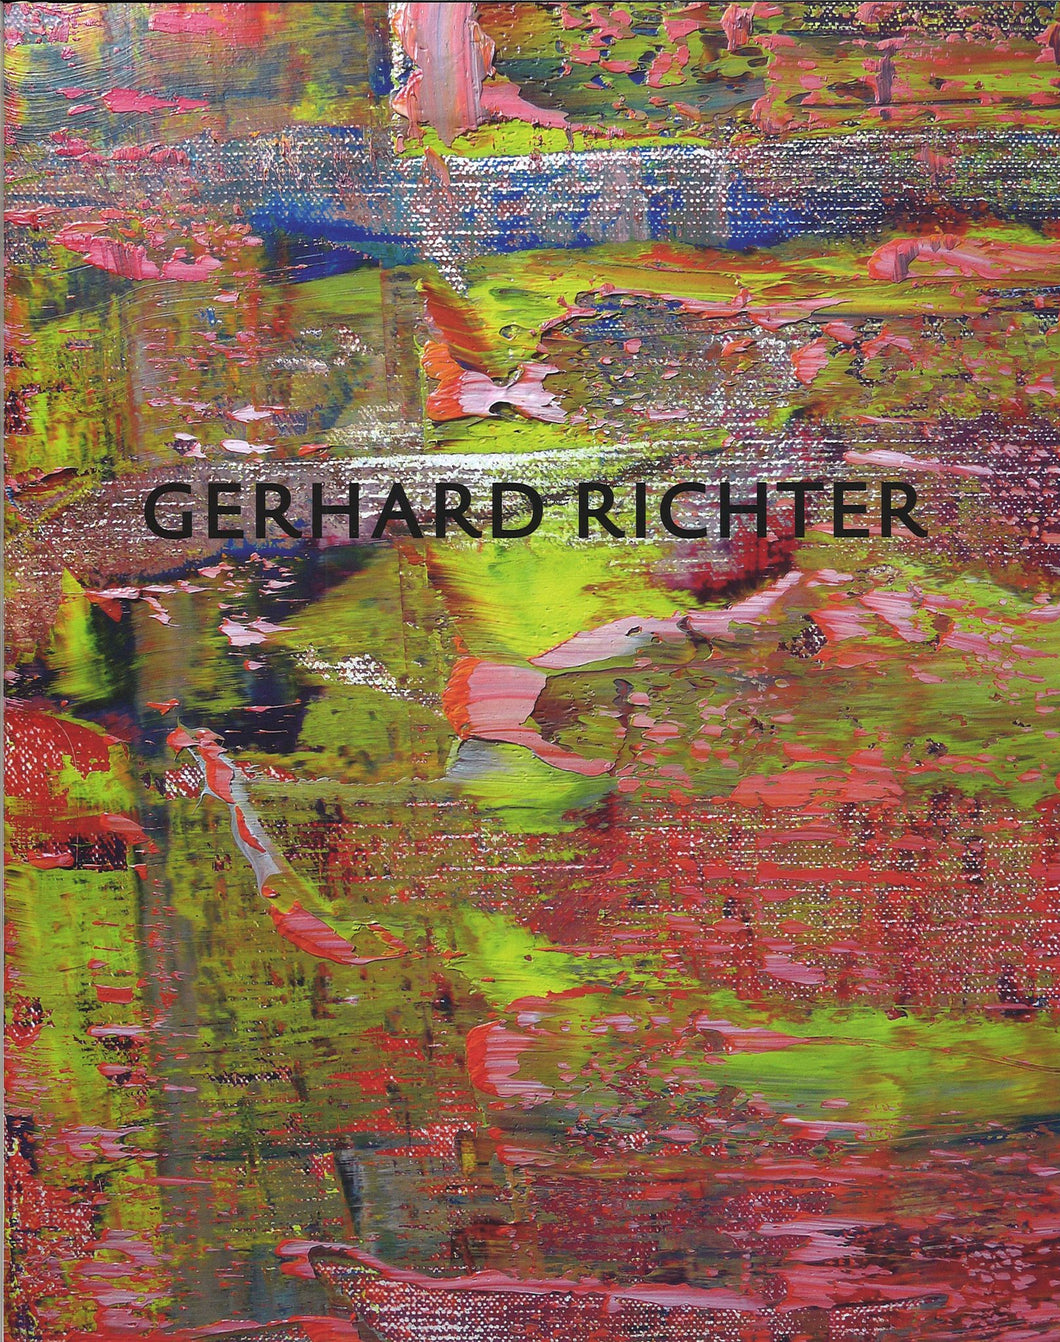 Gerhard Richter: Paintings and Drawings